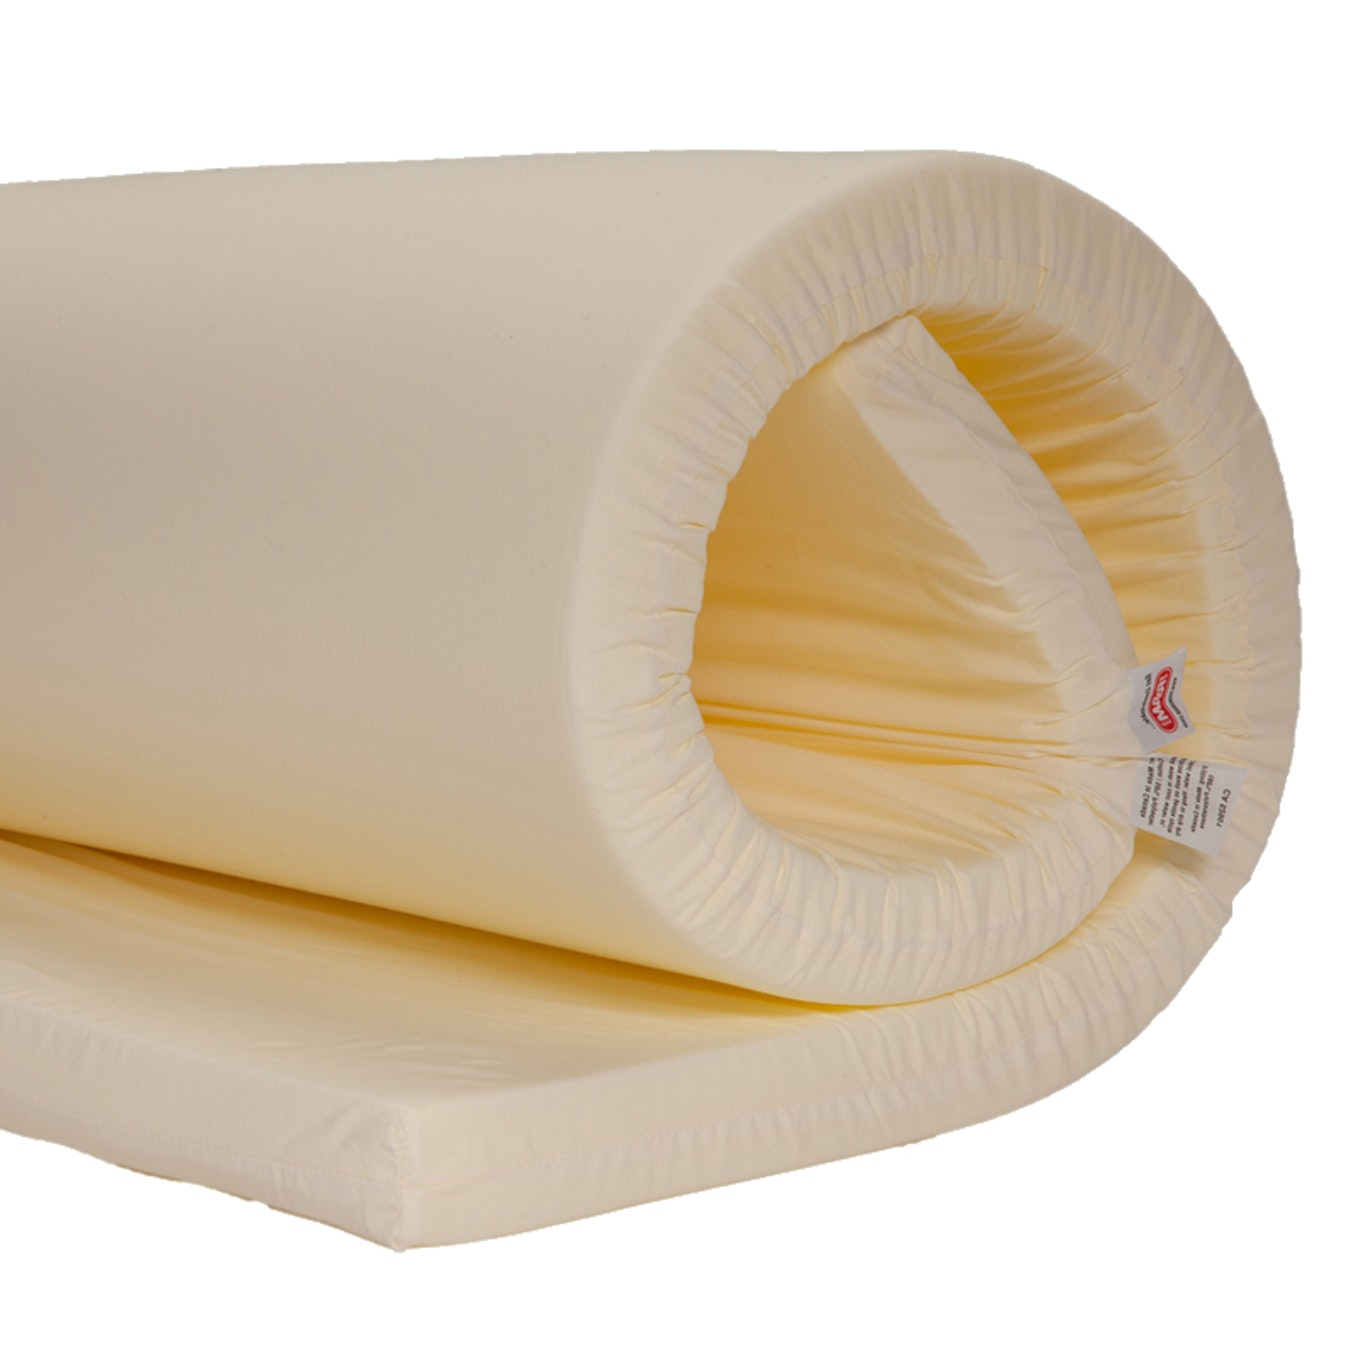 High Density Upholstery Foam | Chair Foam Padding | High Density Foam Cushion